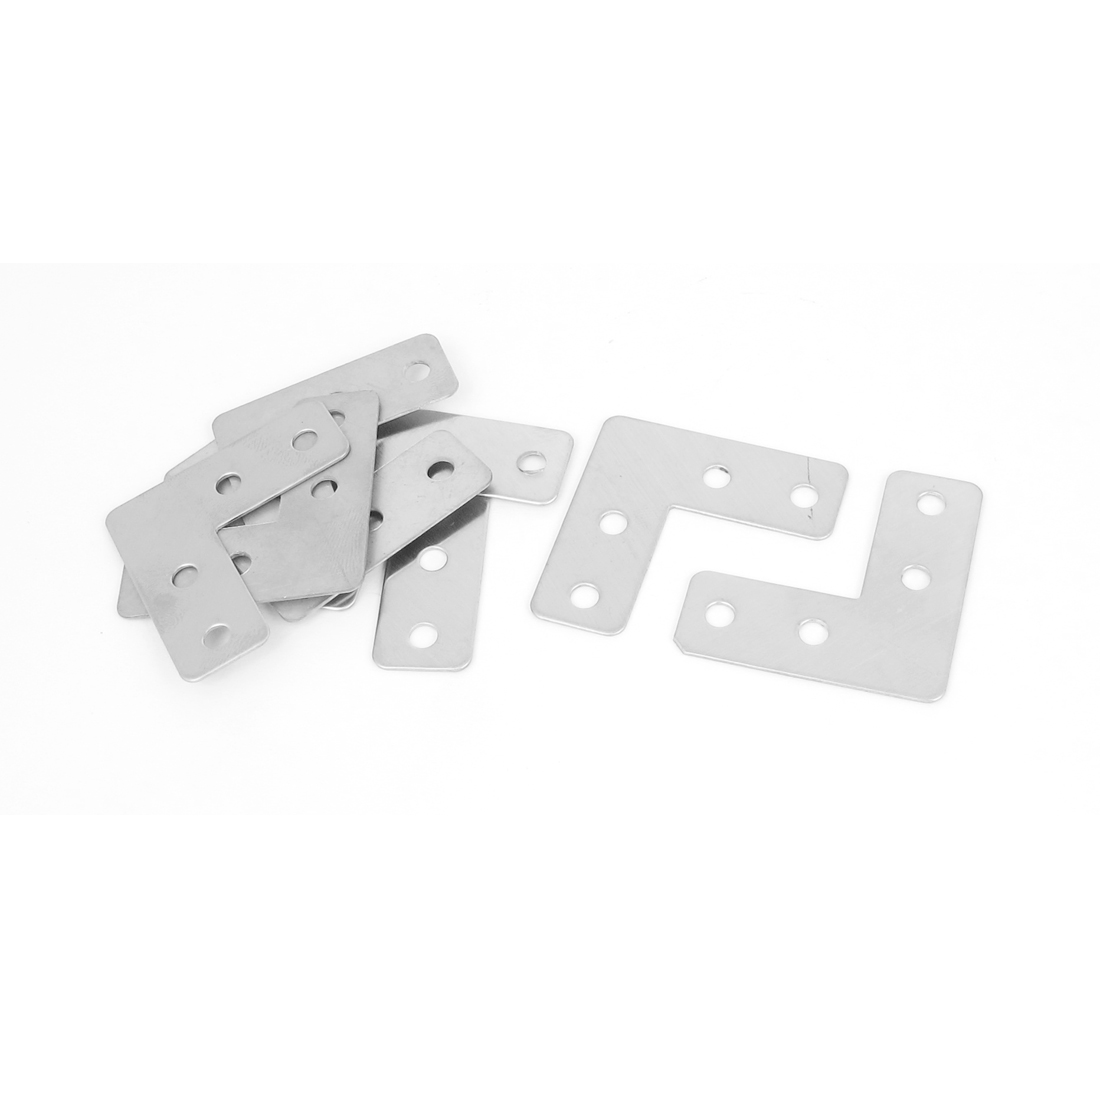 Furniture 40mmx40mmx15mm L Shape Right Angle Flat Plate Corner Brace Bracket 8Pcs